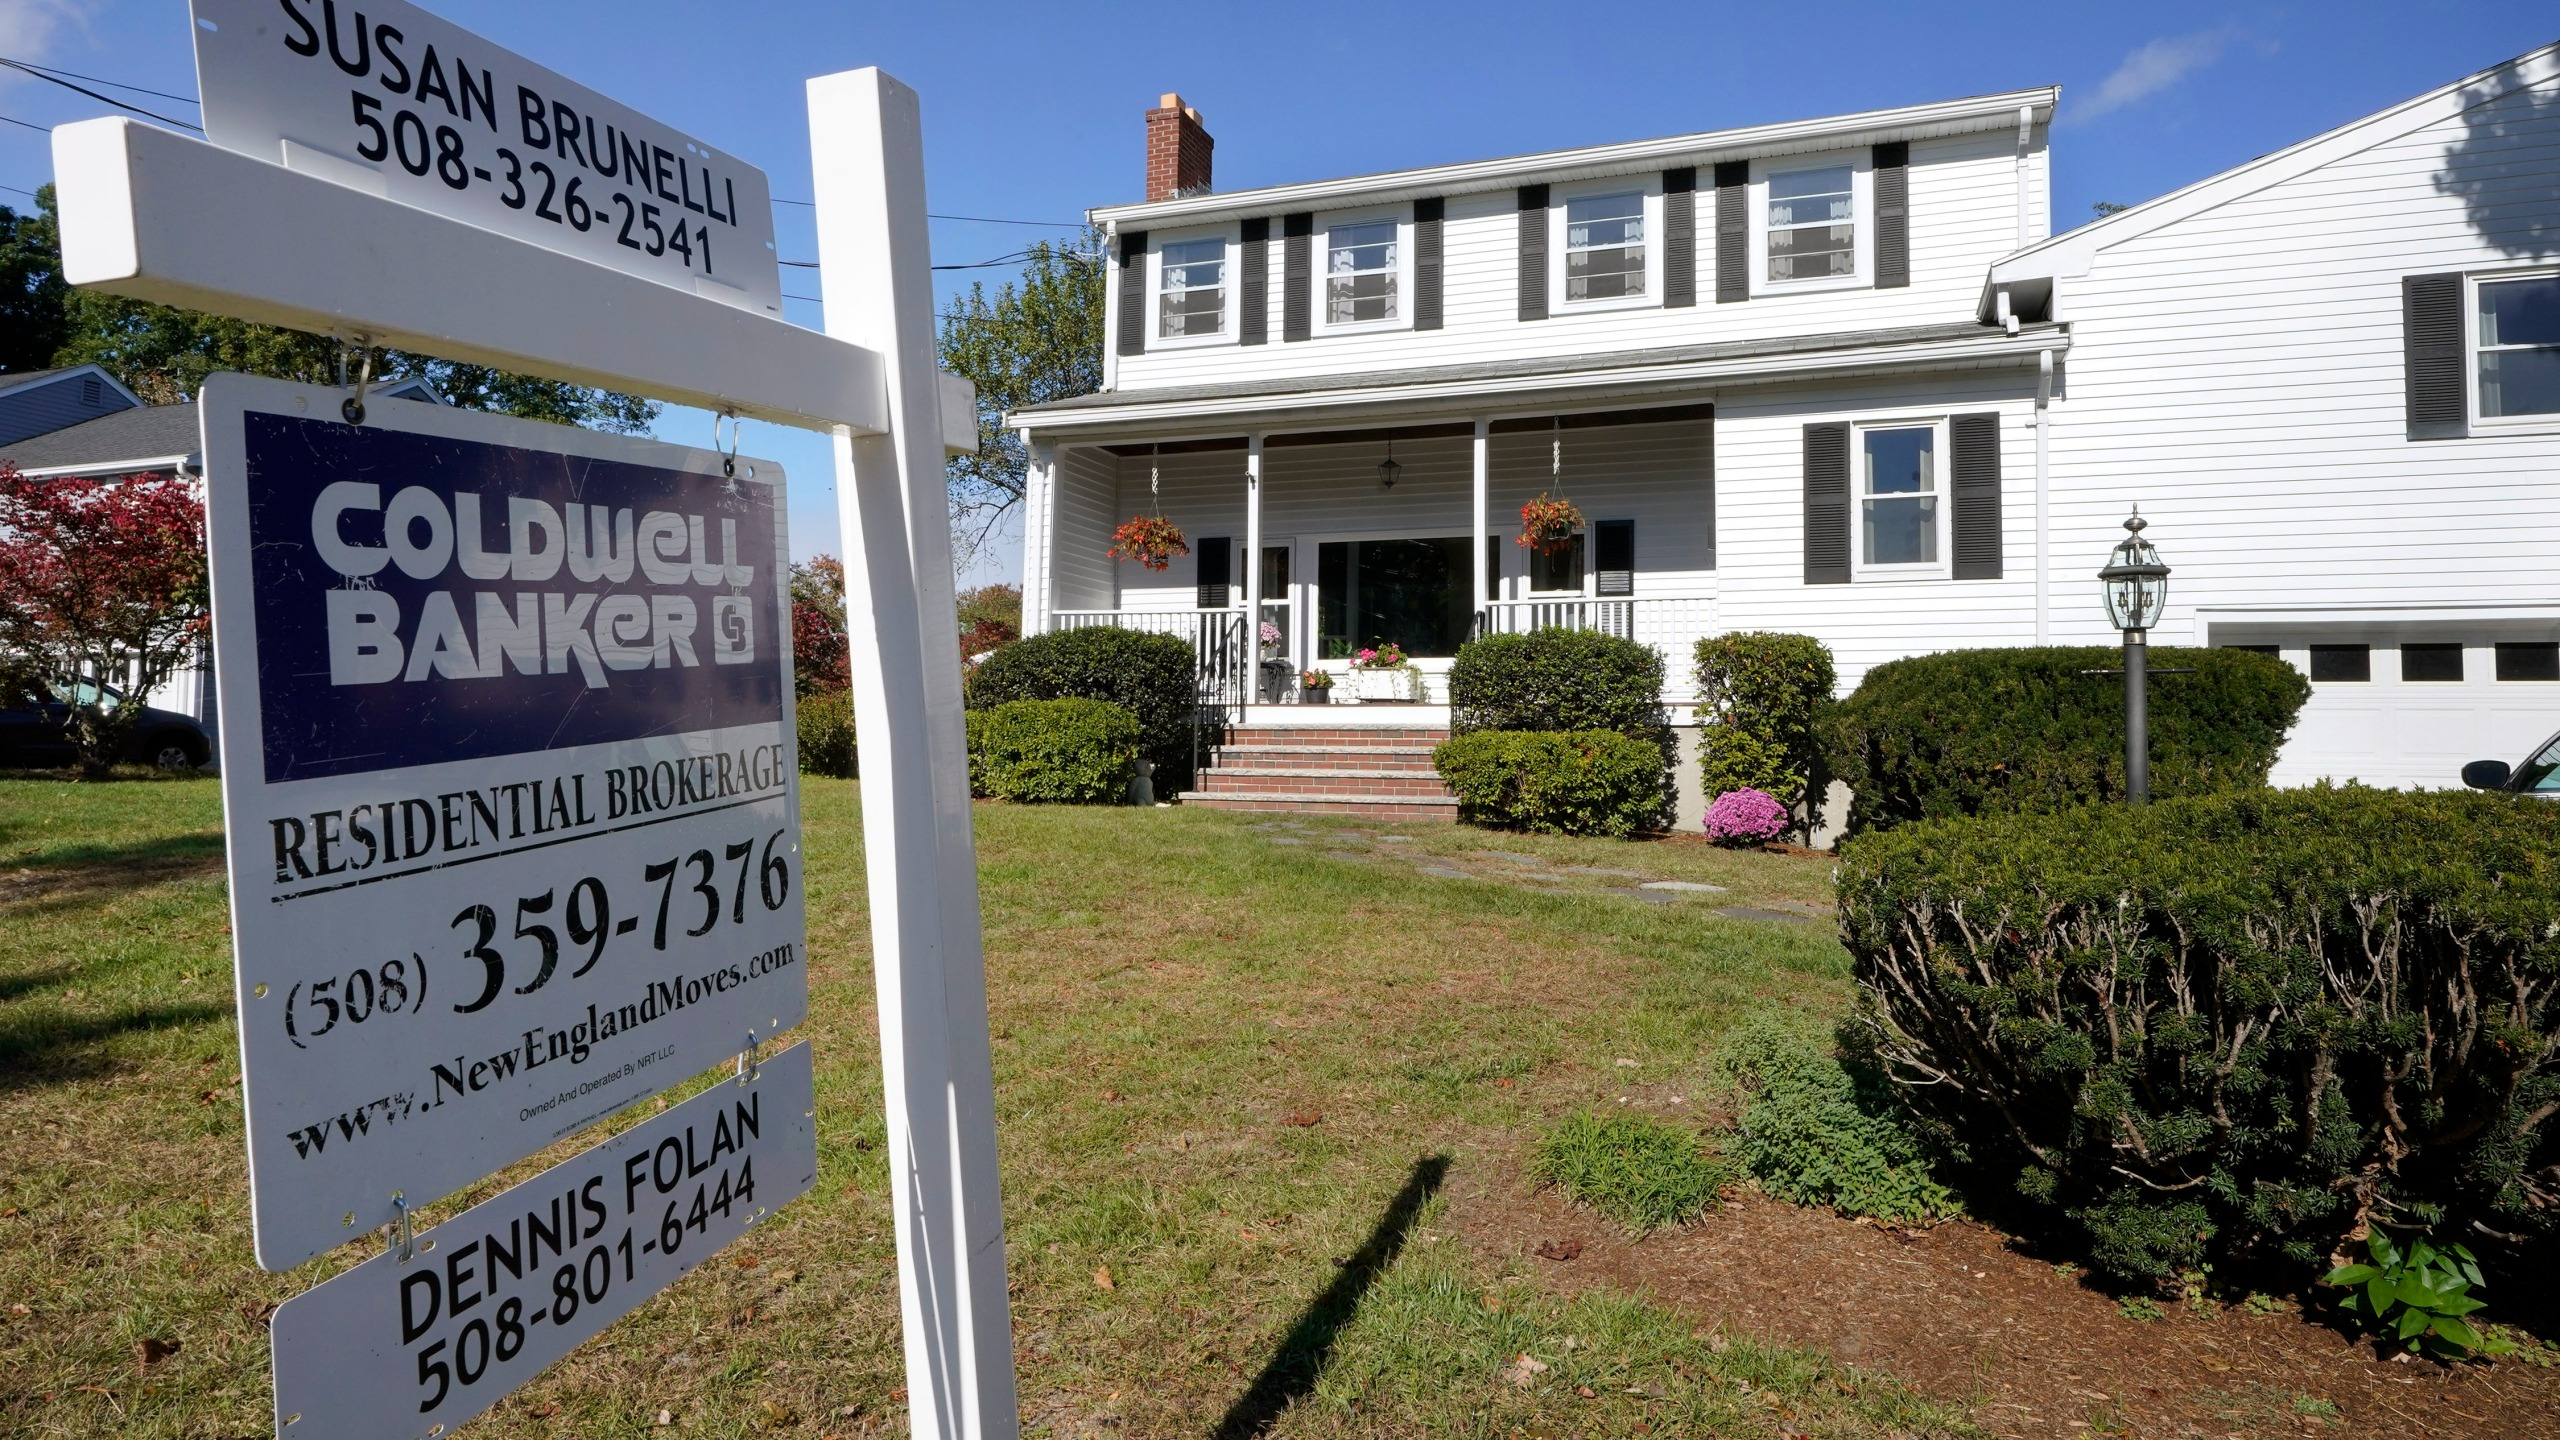 In this Oct. 6, 2020 file photo, a real estate brokerage sign stands in front of a house in Norwood, Mass. (AP Photo/Steven Senne)